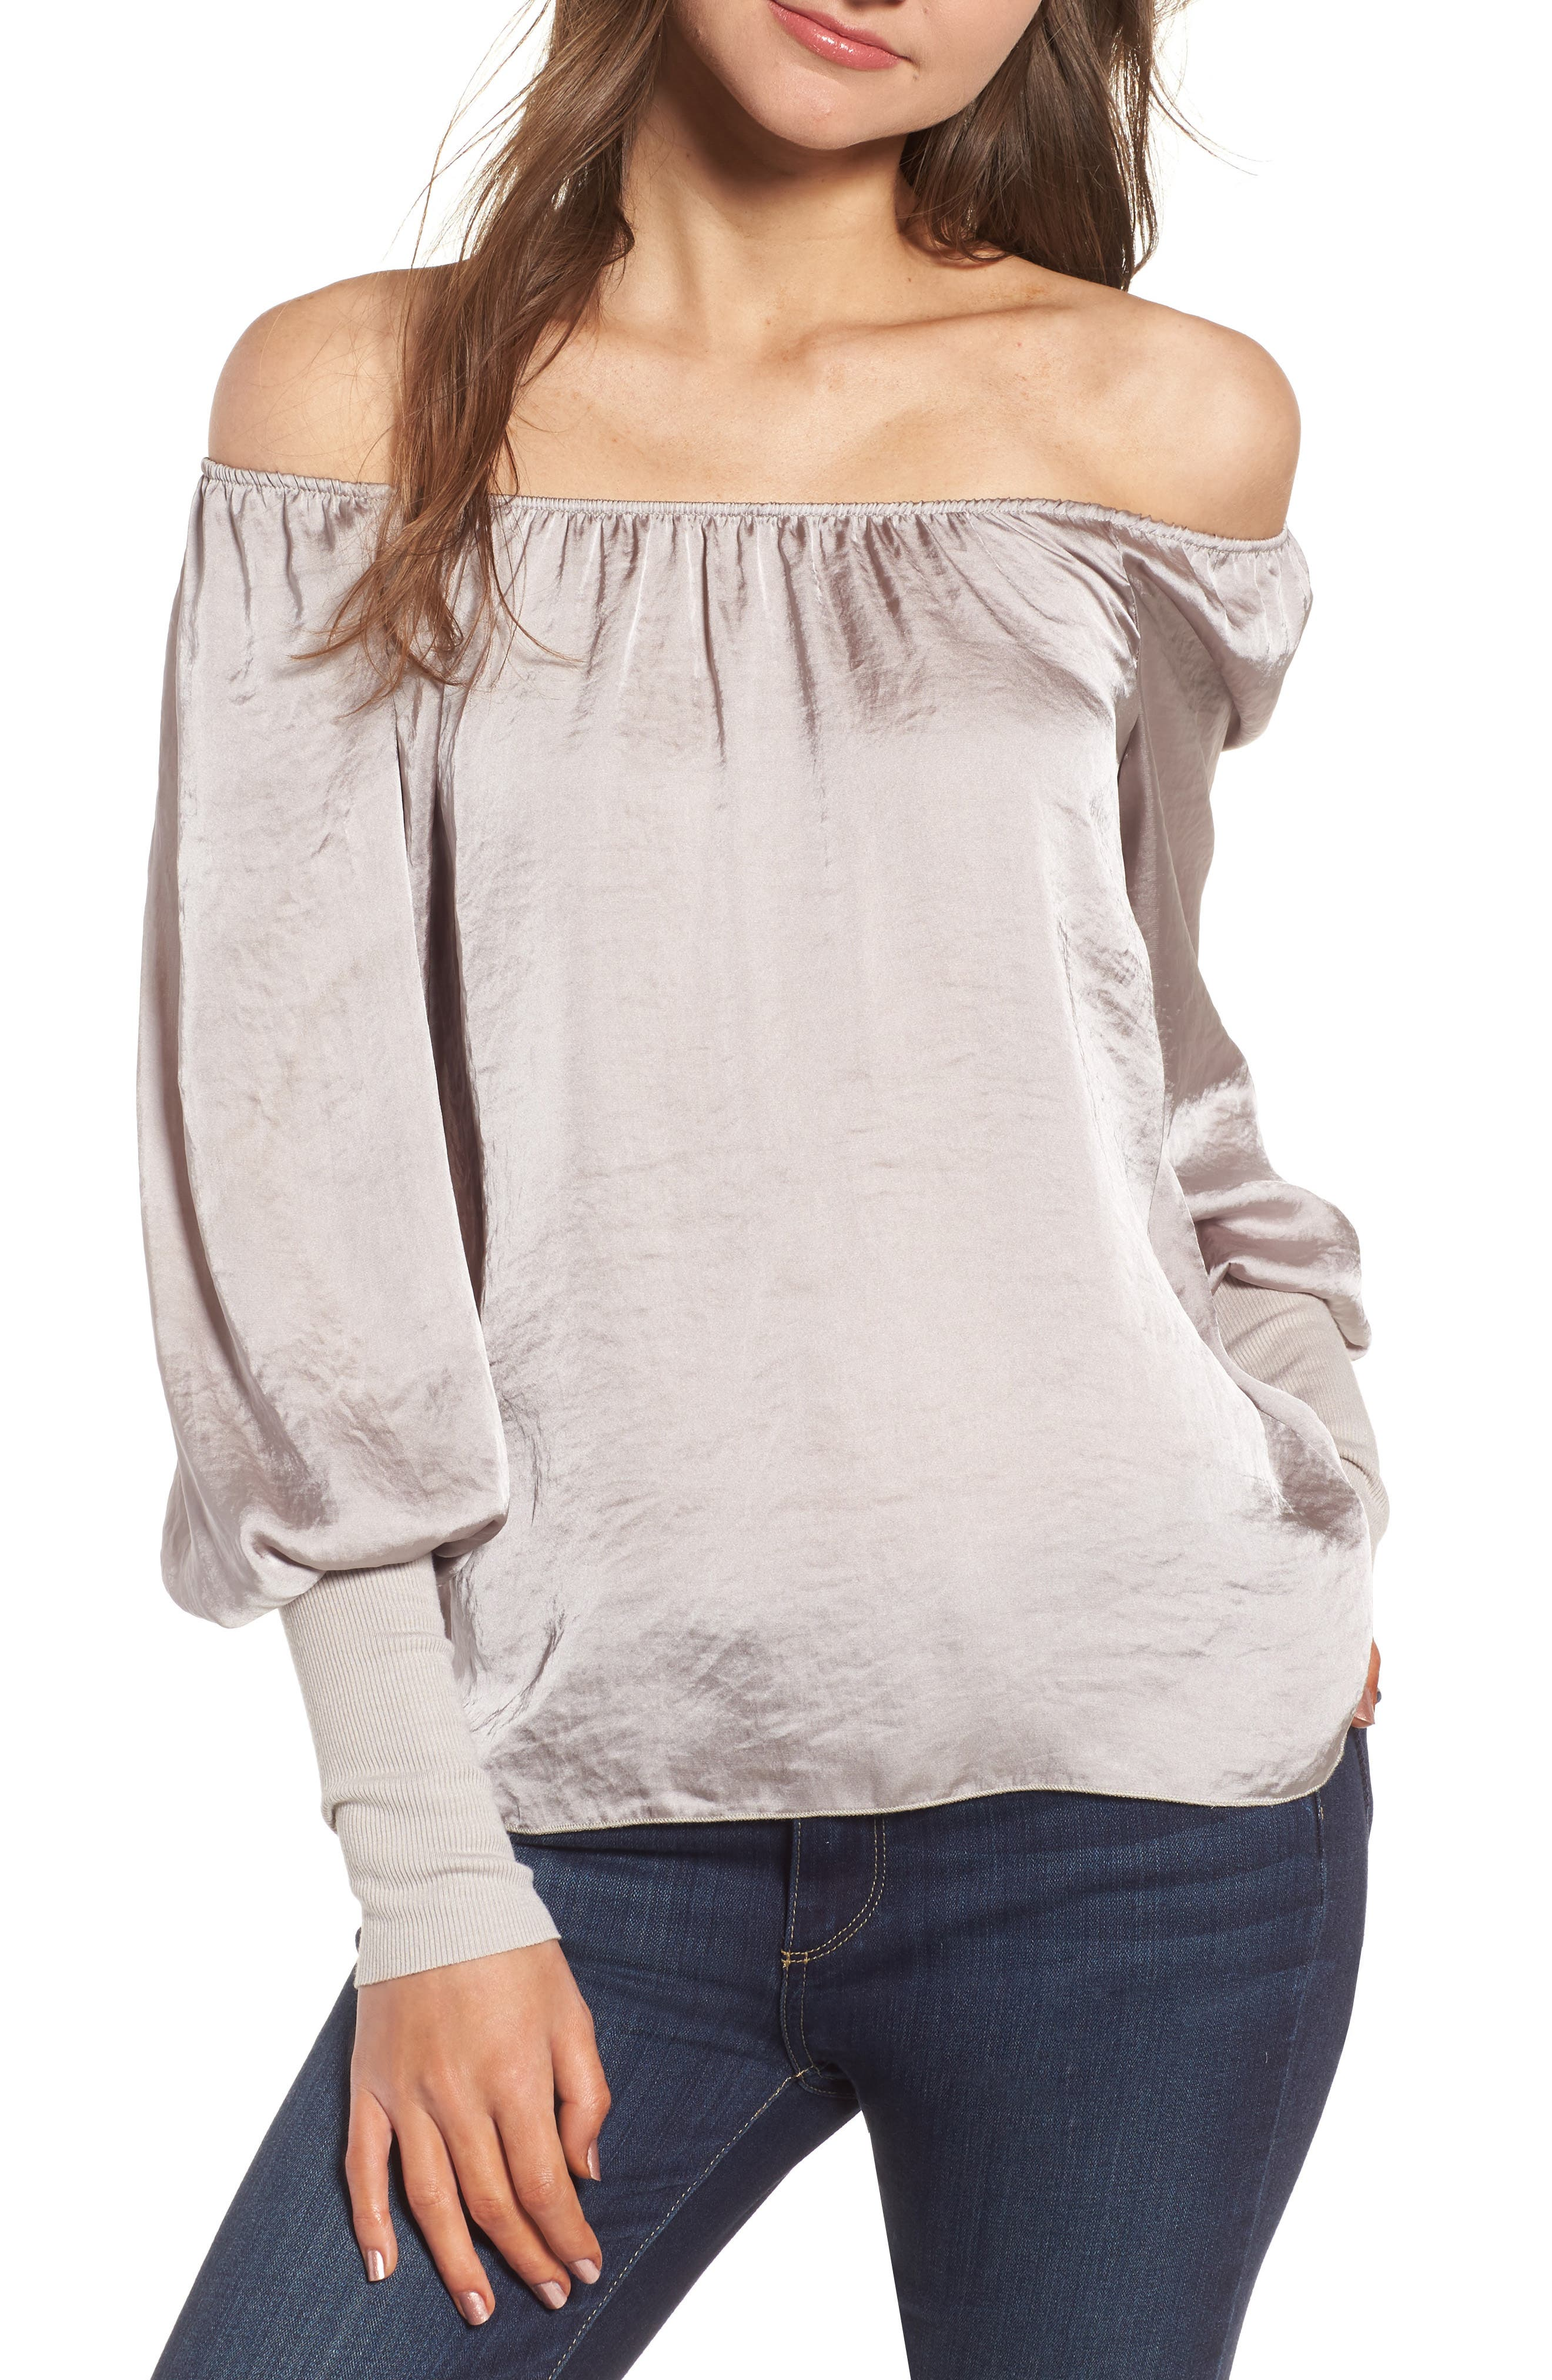 Working Title Satin Top,                         Main,                         color, Taupe